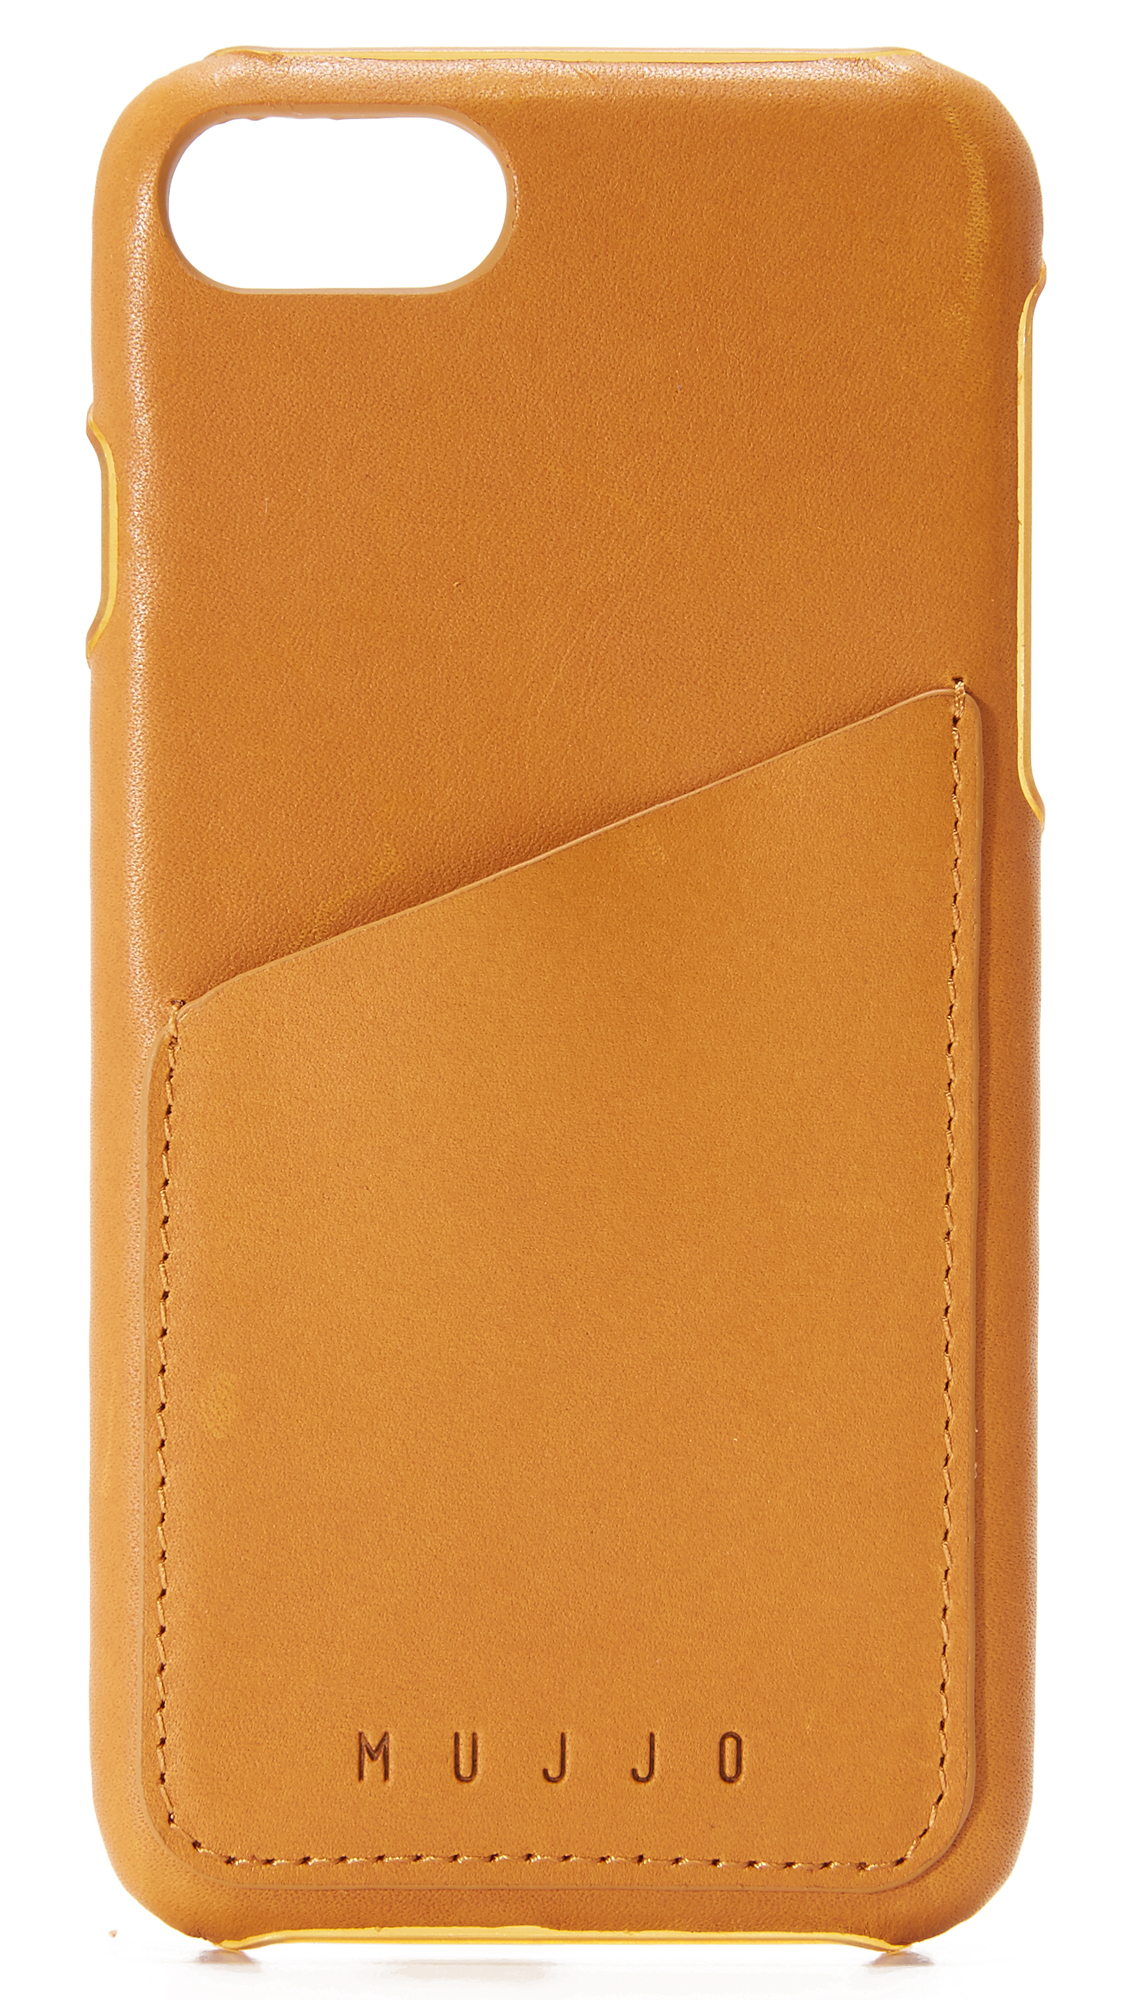 Mujjo Leather Wallet Iphone 7 Case - Tan at Shopbop